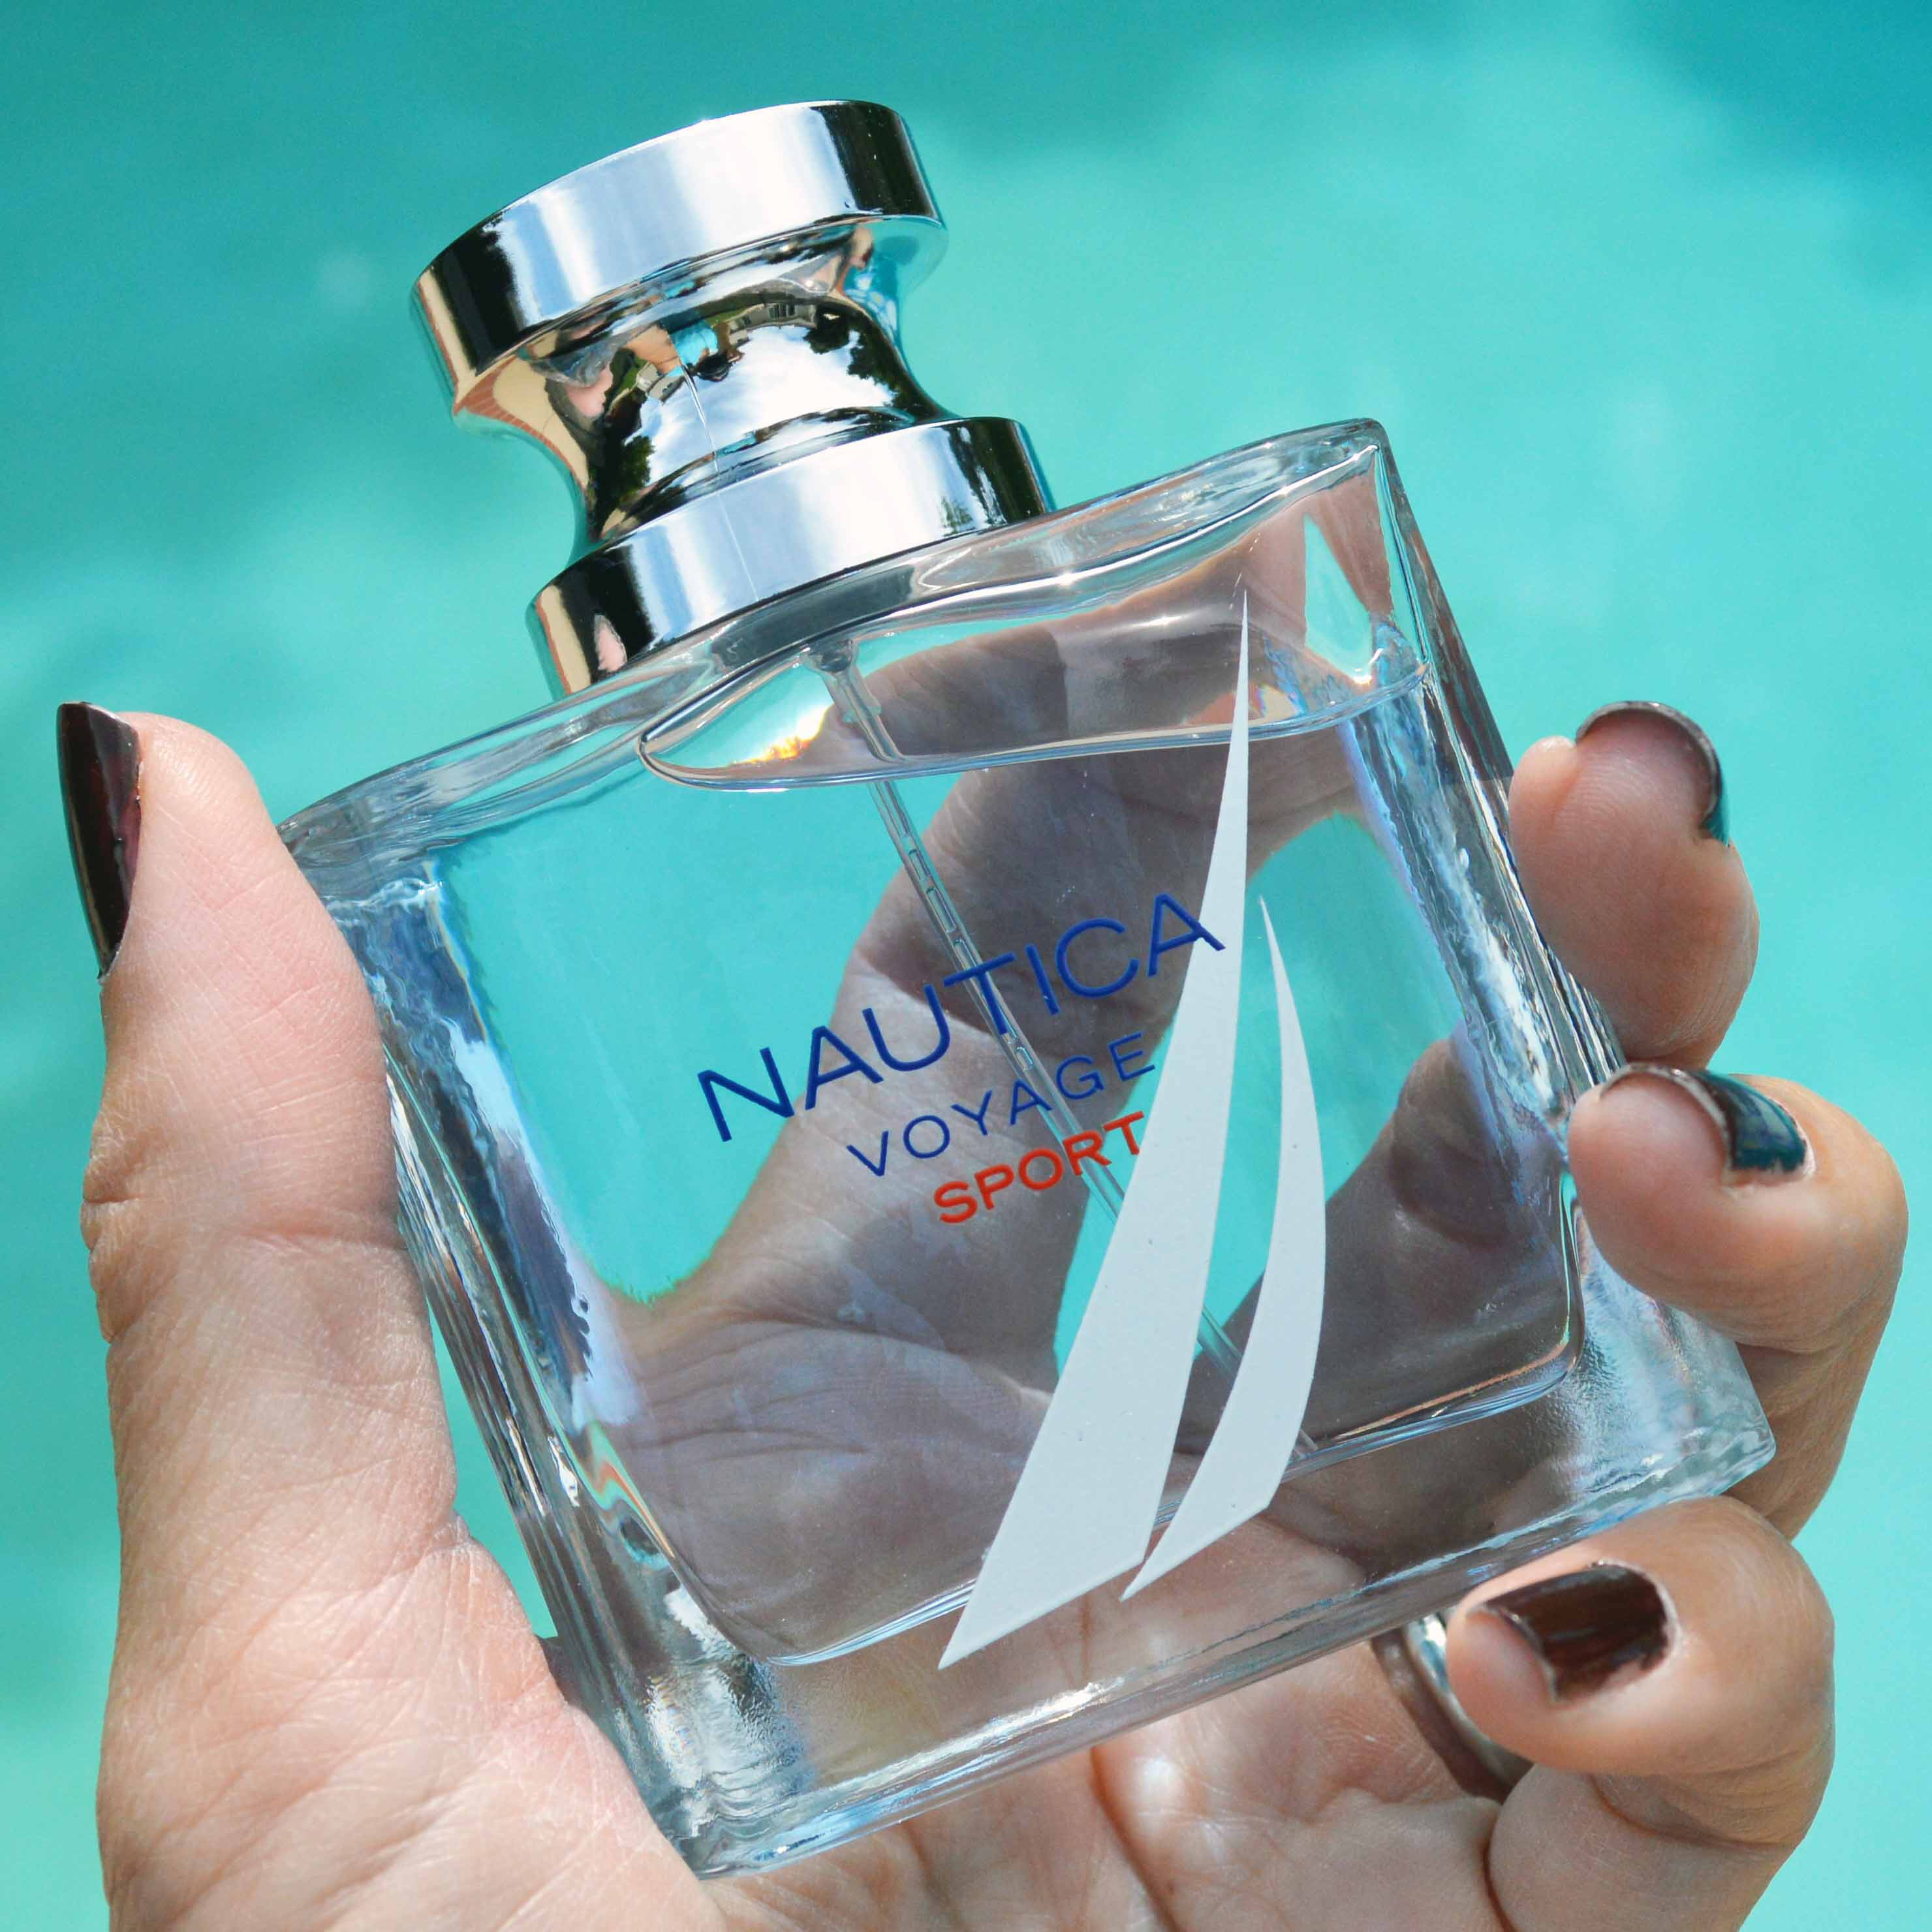 nautica voyage sport edt fathers day gift idea